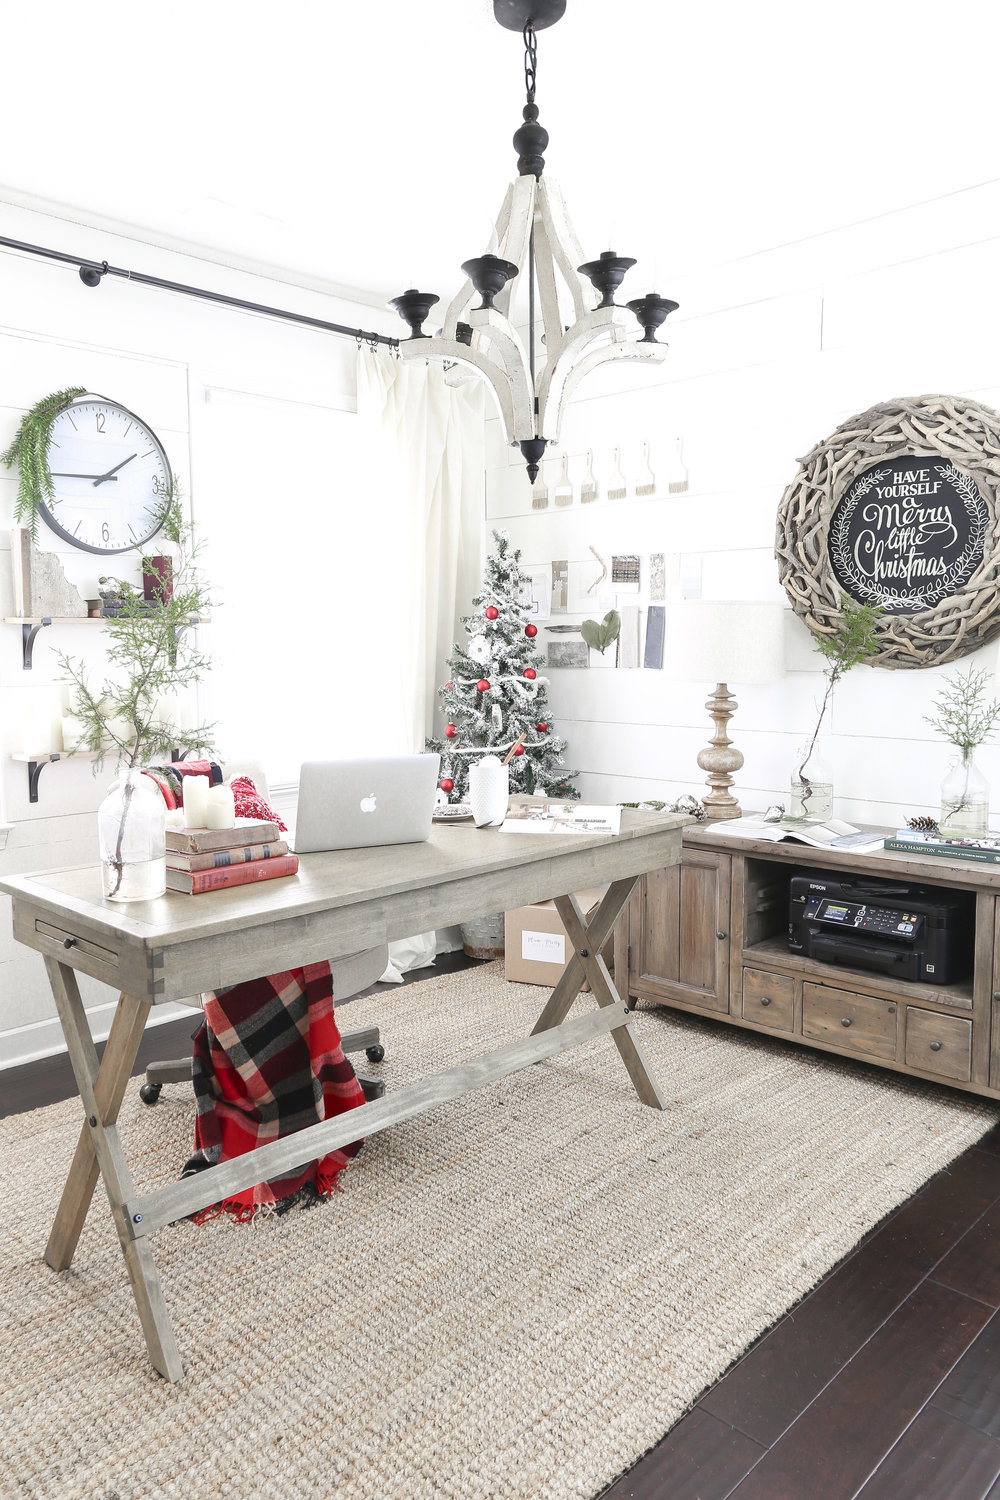 Plum Pretty Decor & Design Co.The Christmas Tour Continues: My ...